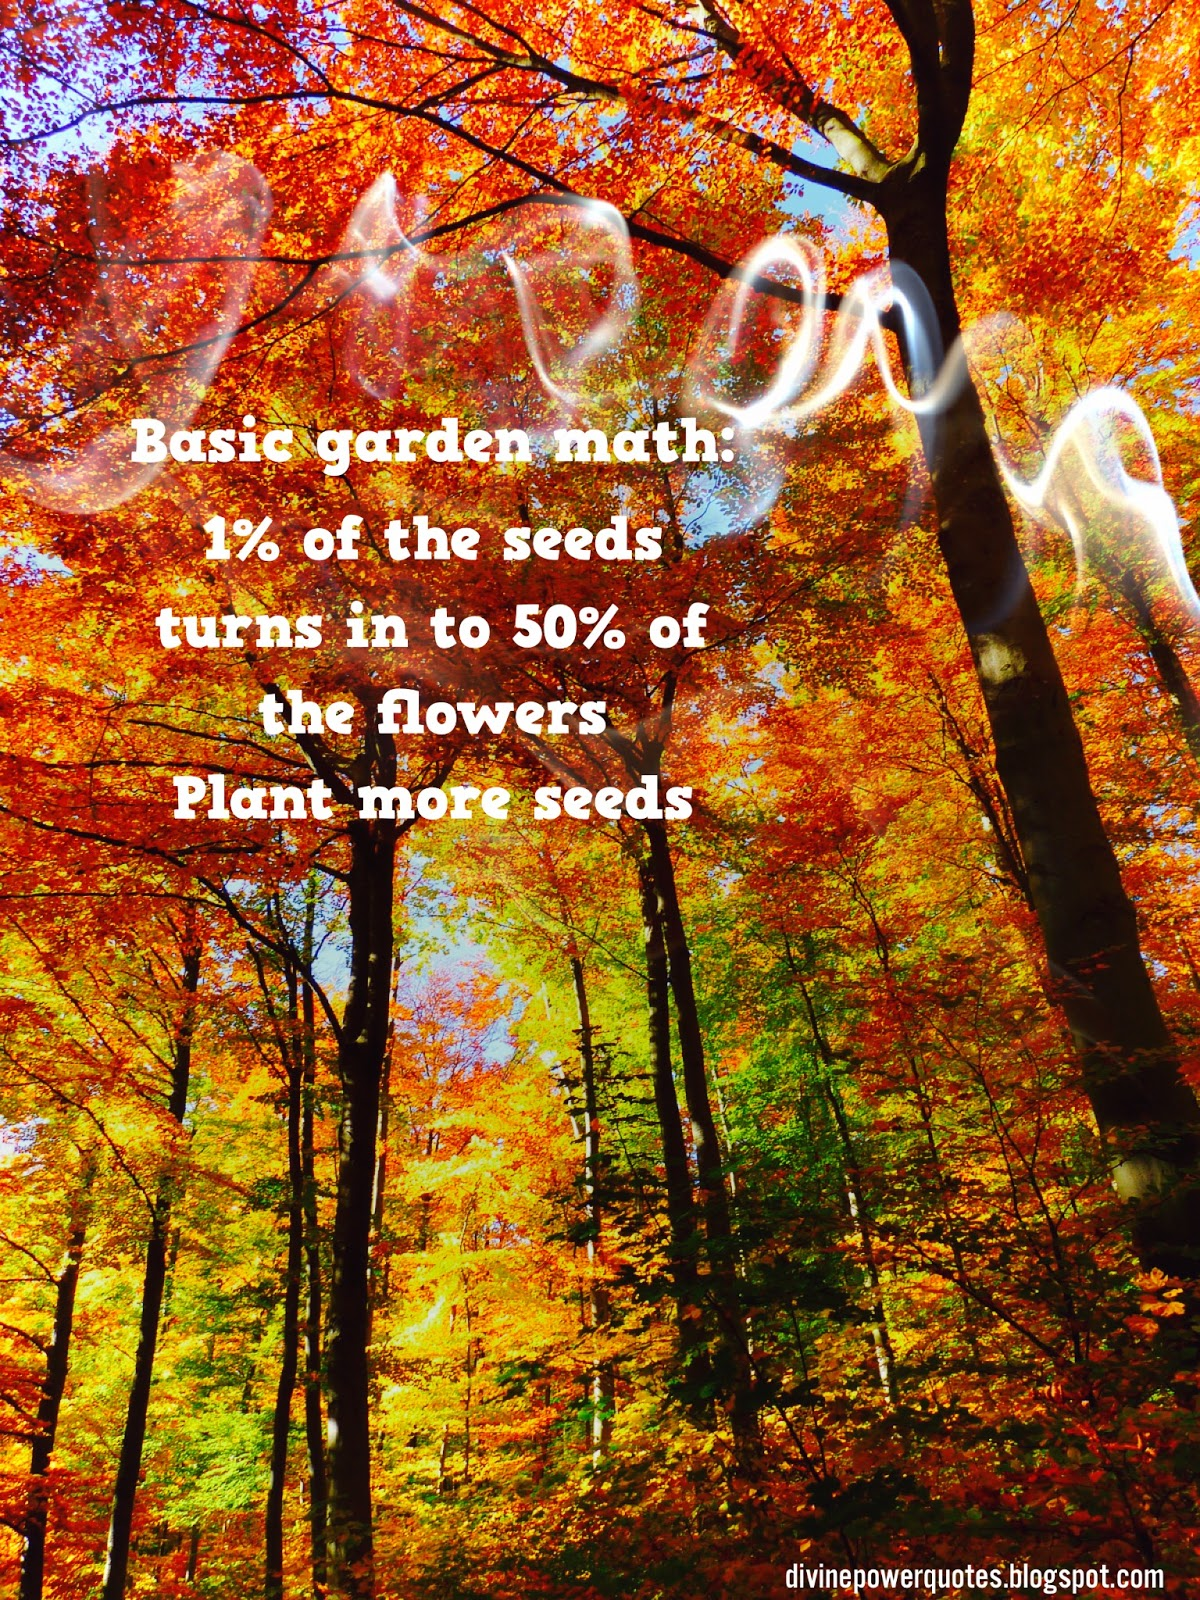 Divine Power Quotes Pant More Seeds Nature Quote